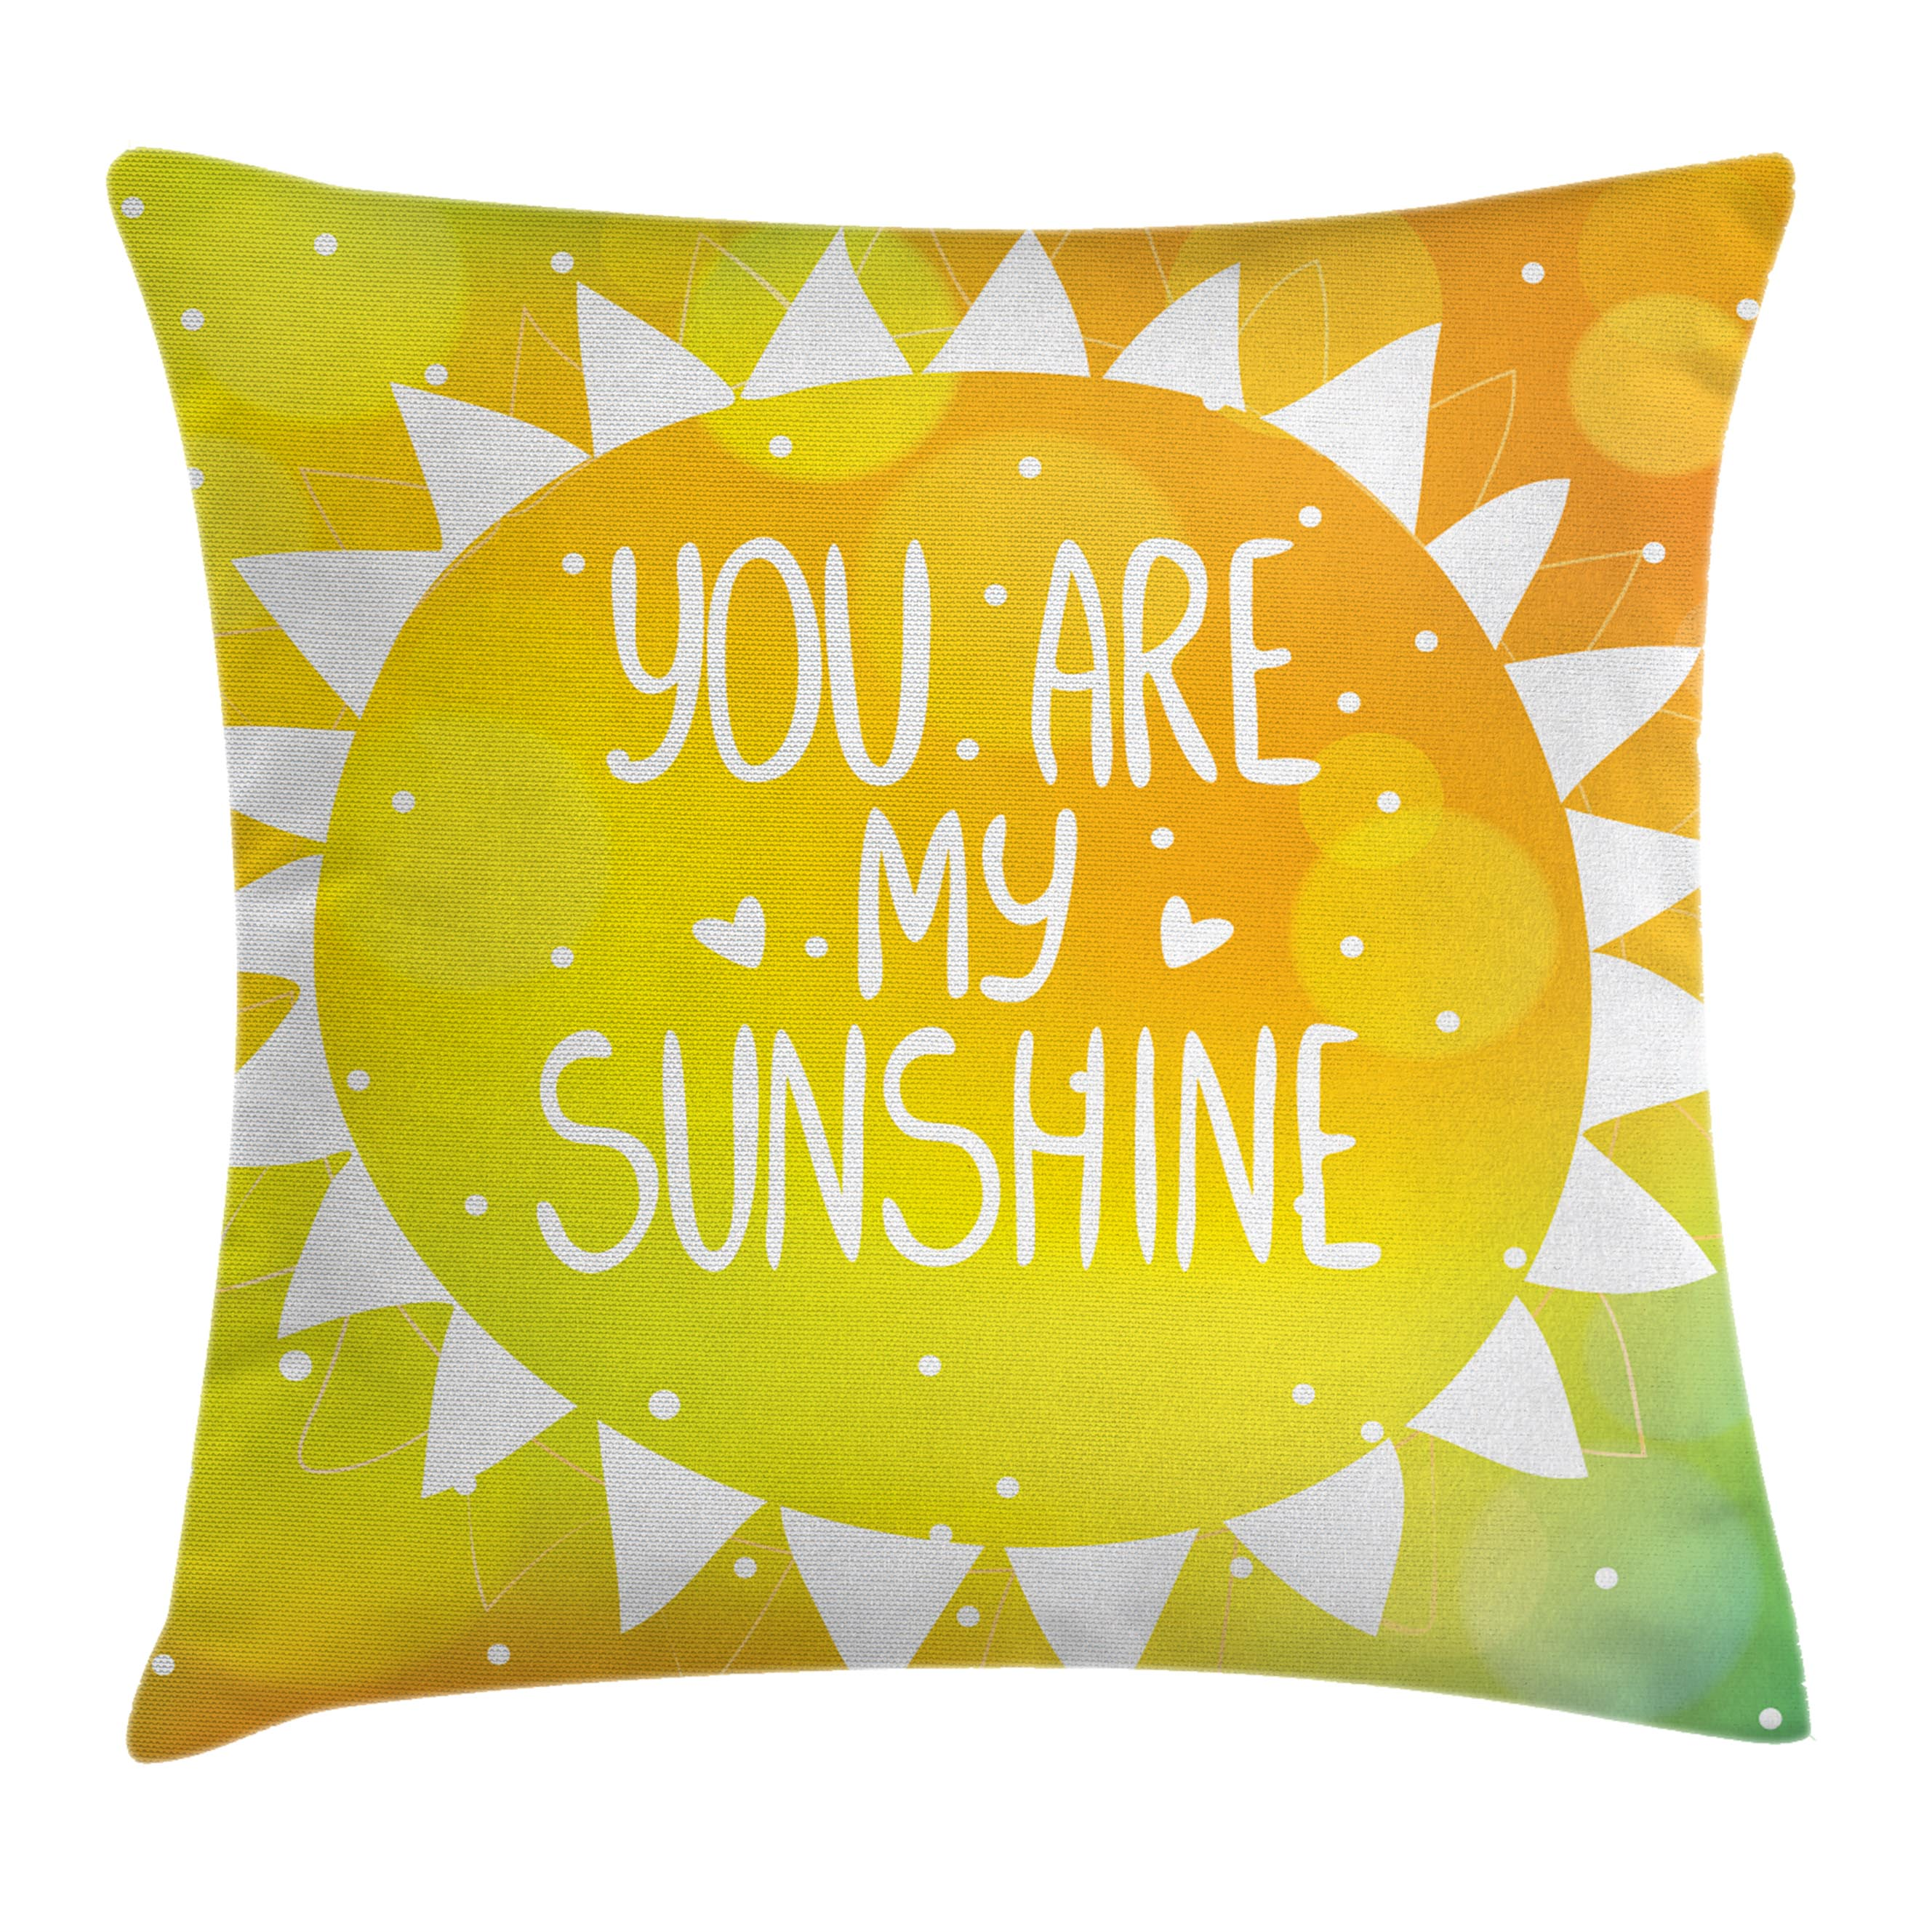 Quotes Decor Throw Pillow Cushion Cover, Radiant Sunshine Phrase Made with Cute Triangles Dots Ethnic Kitsch Love Artwork, Decorative Square Accent Pillow Case, 18 X 18 Inches, Yellow, by Ambesonne